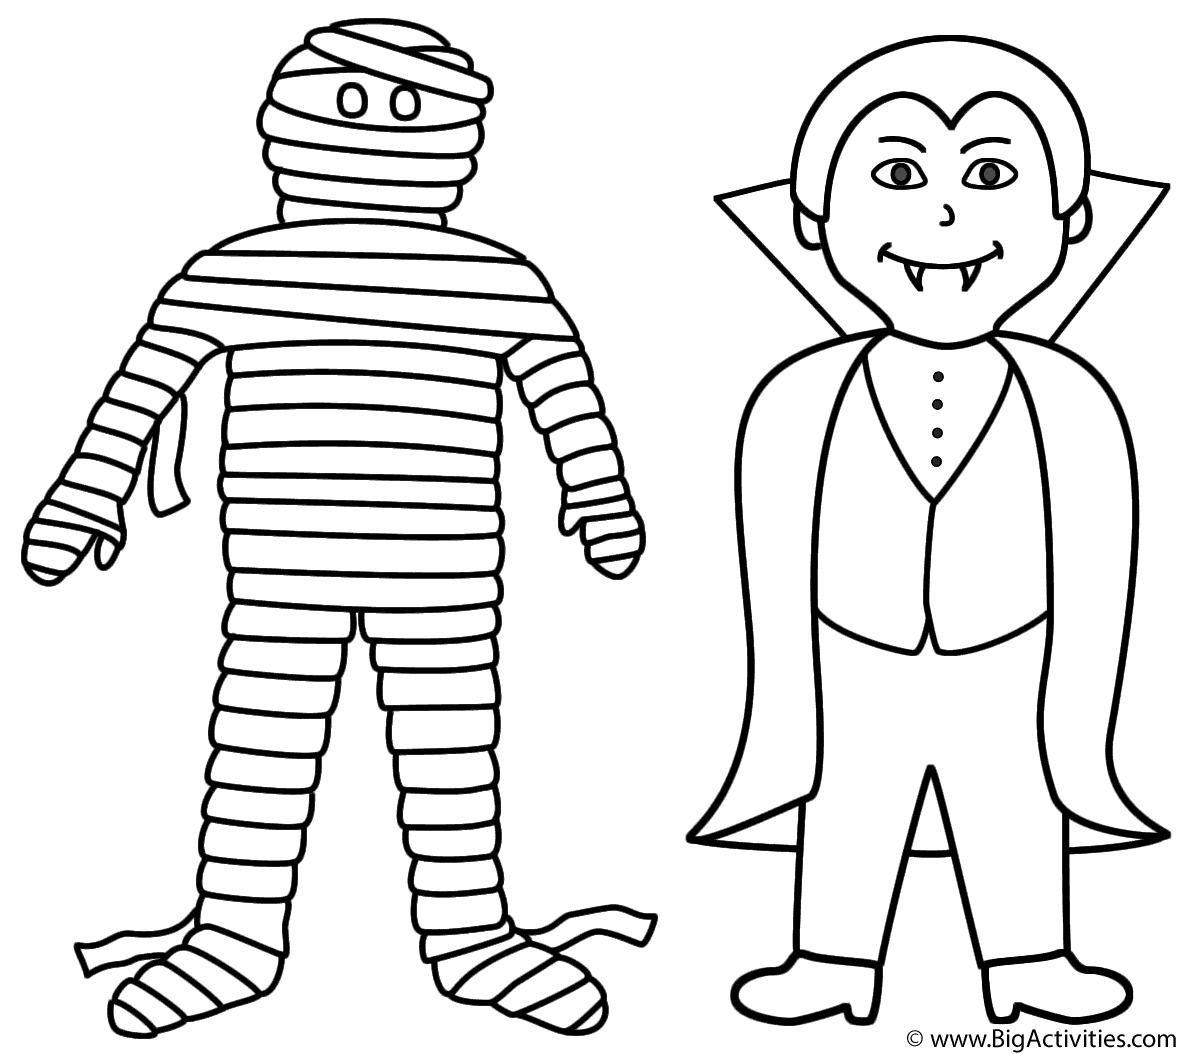 mummy coloring pages 13 best mummies coloring pages for kids updated 2018 mummy coloring pages